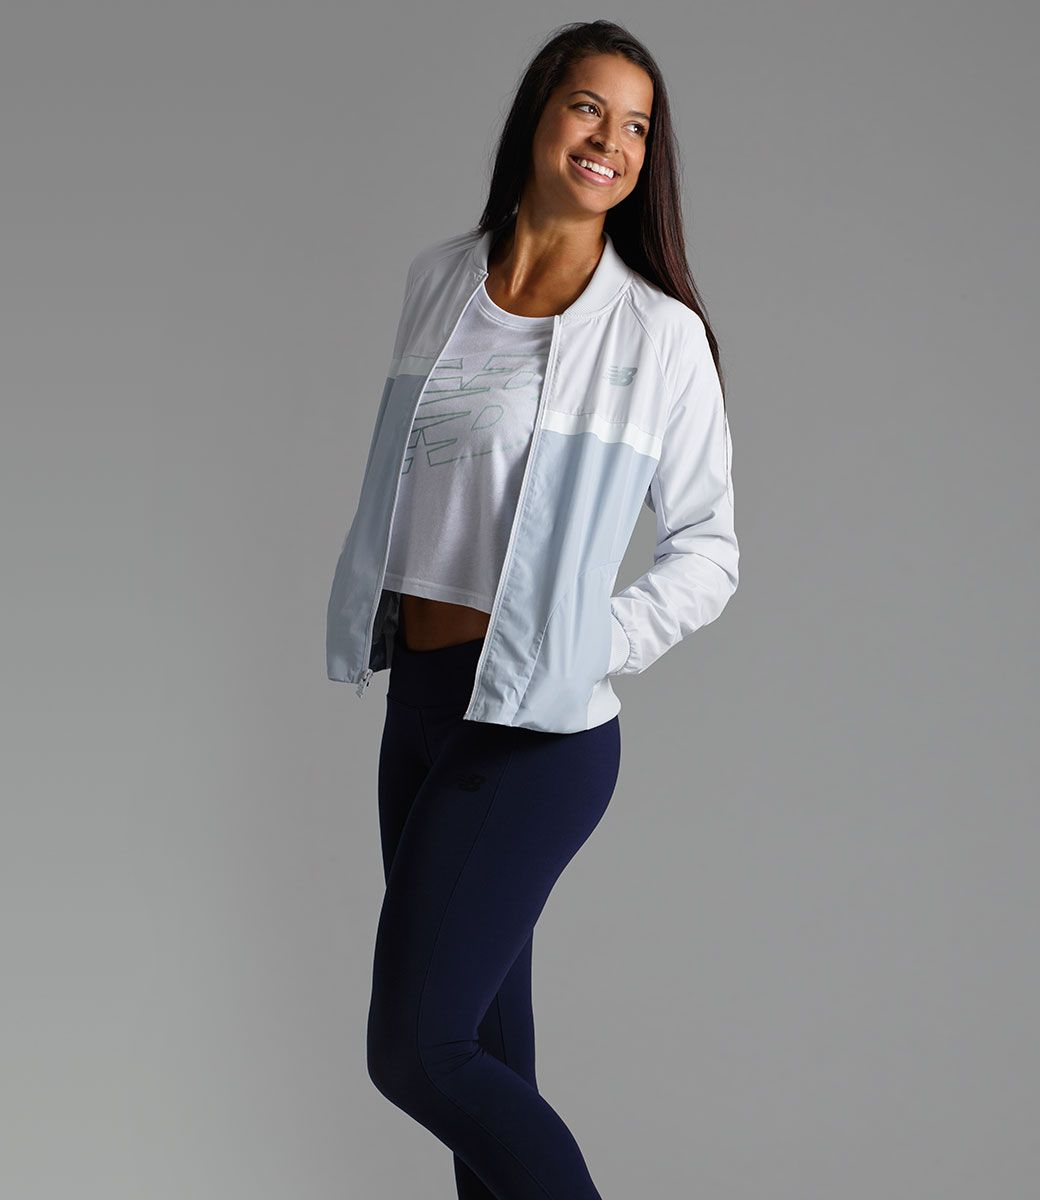 New Balance Womens Lifestyle KL1 Q317,